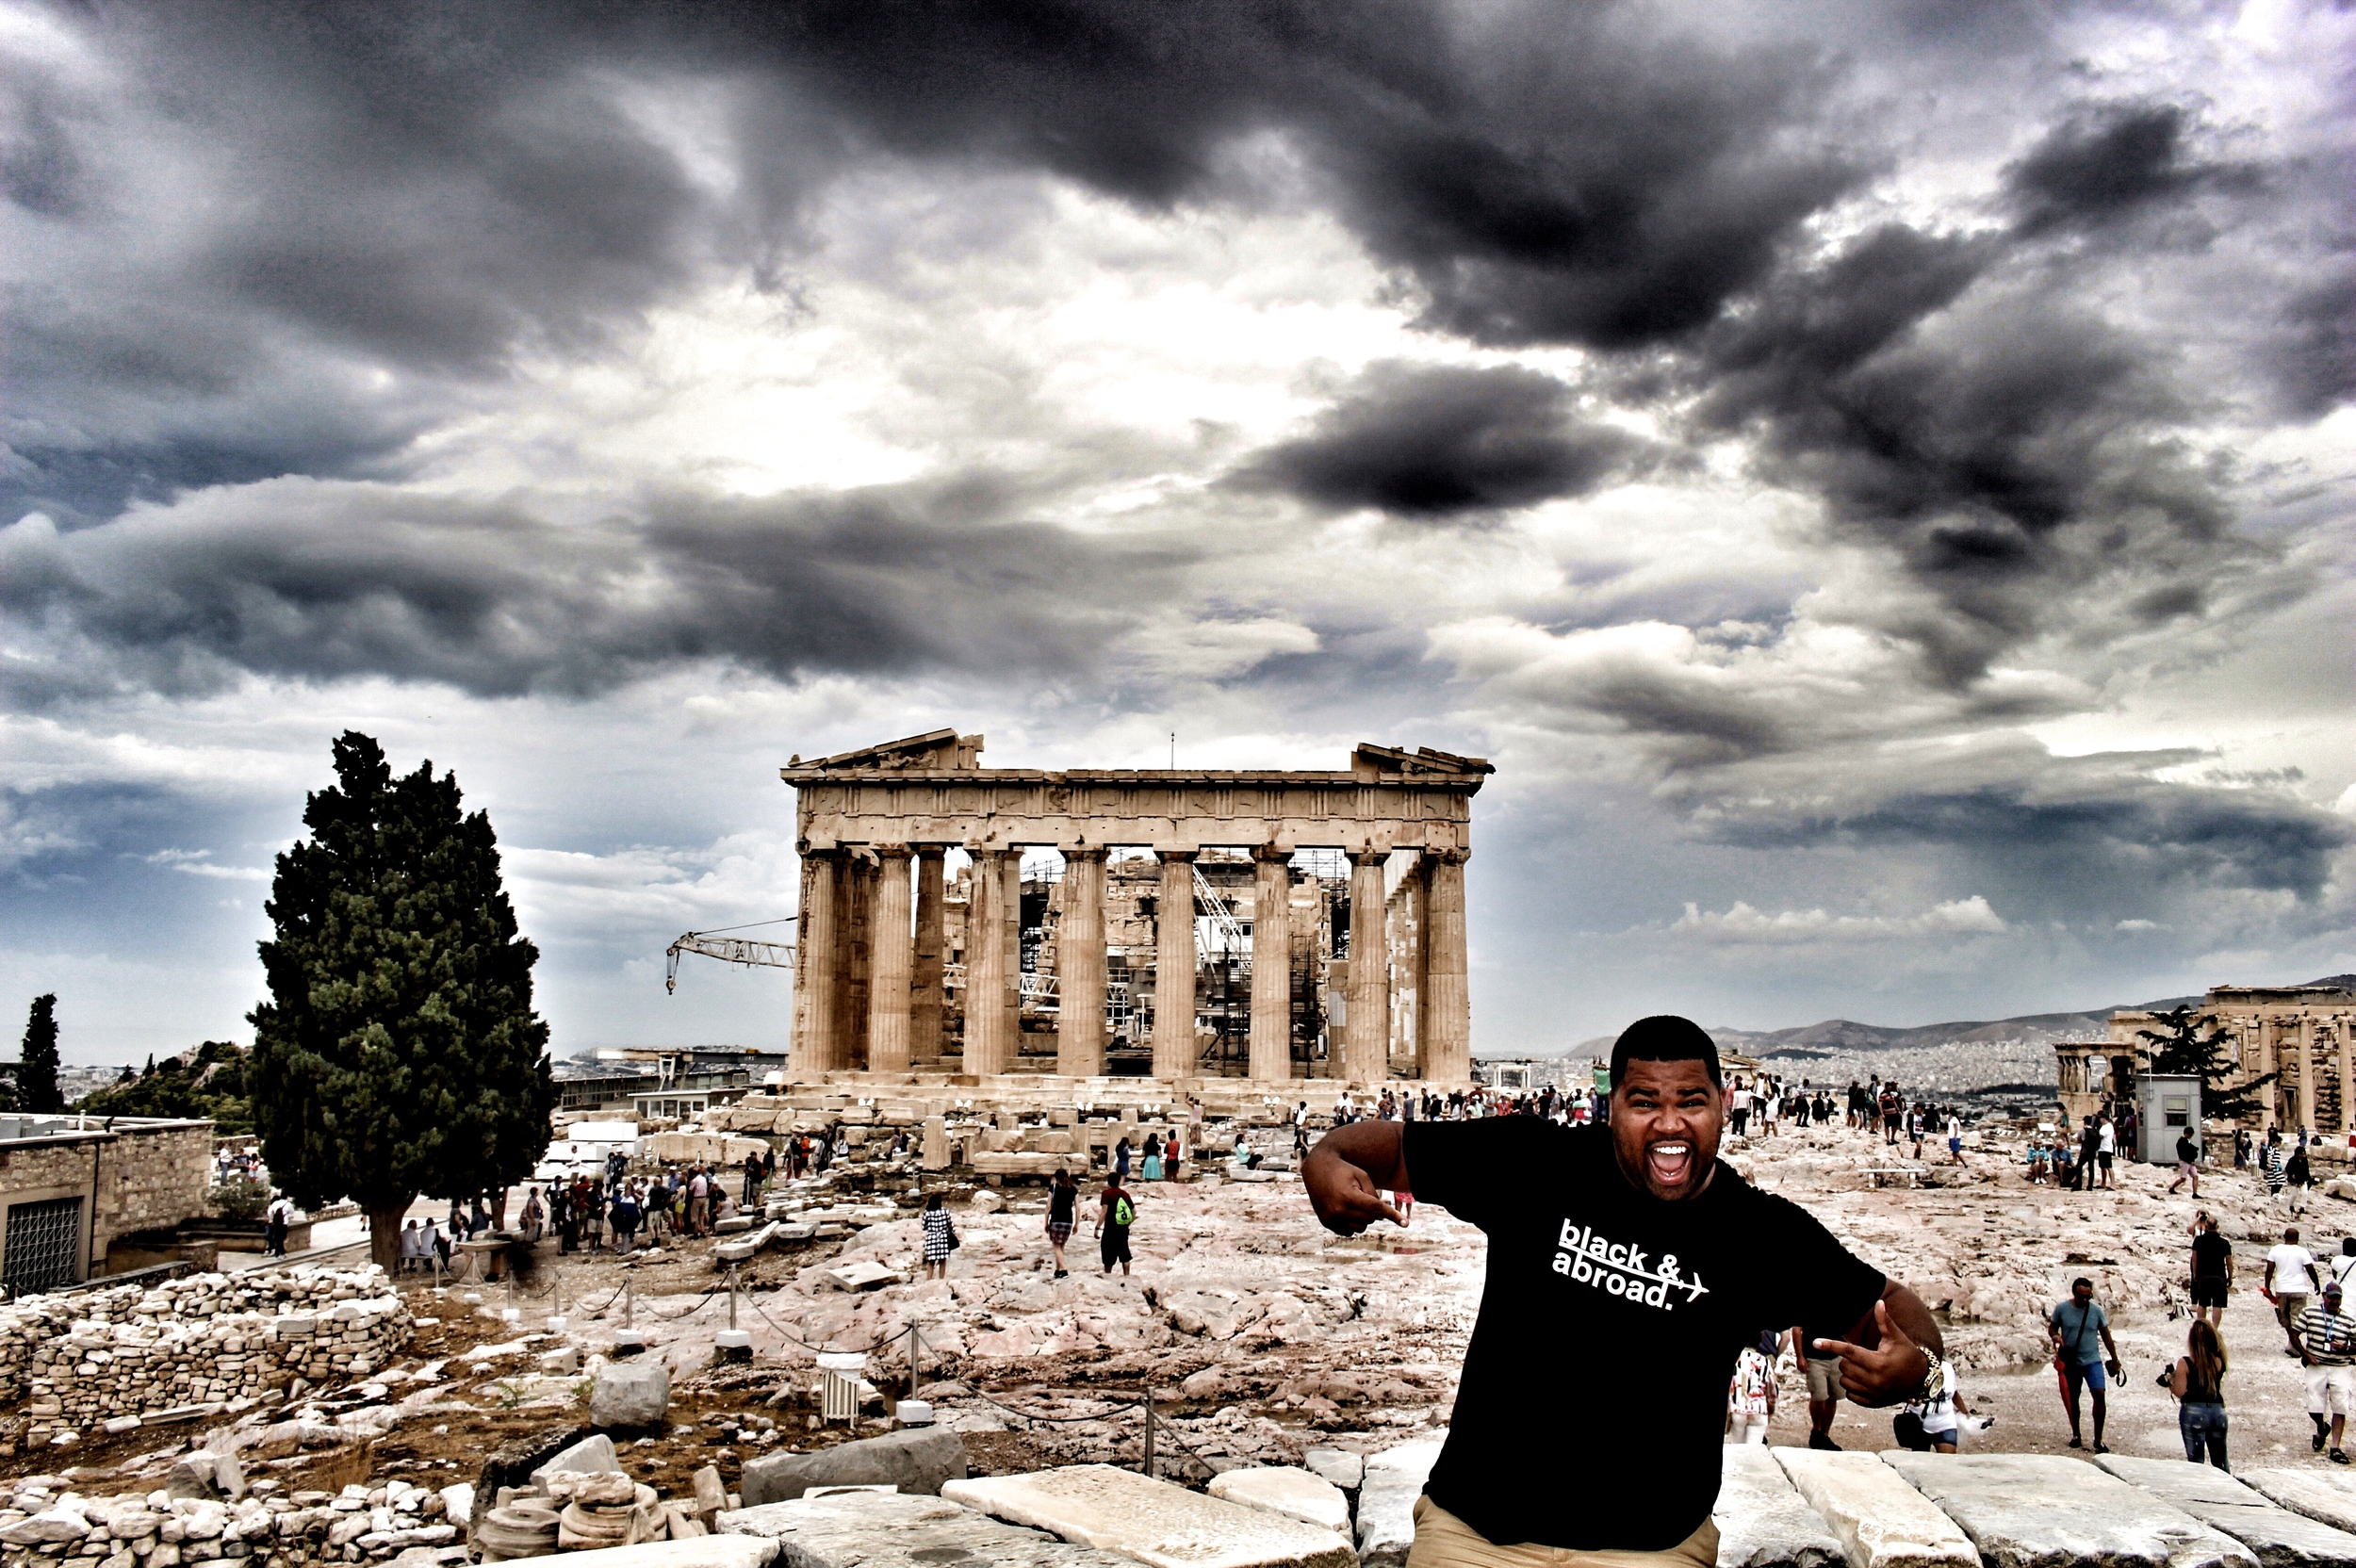 Black & Abroad at the Acropolis in Athens, Greece